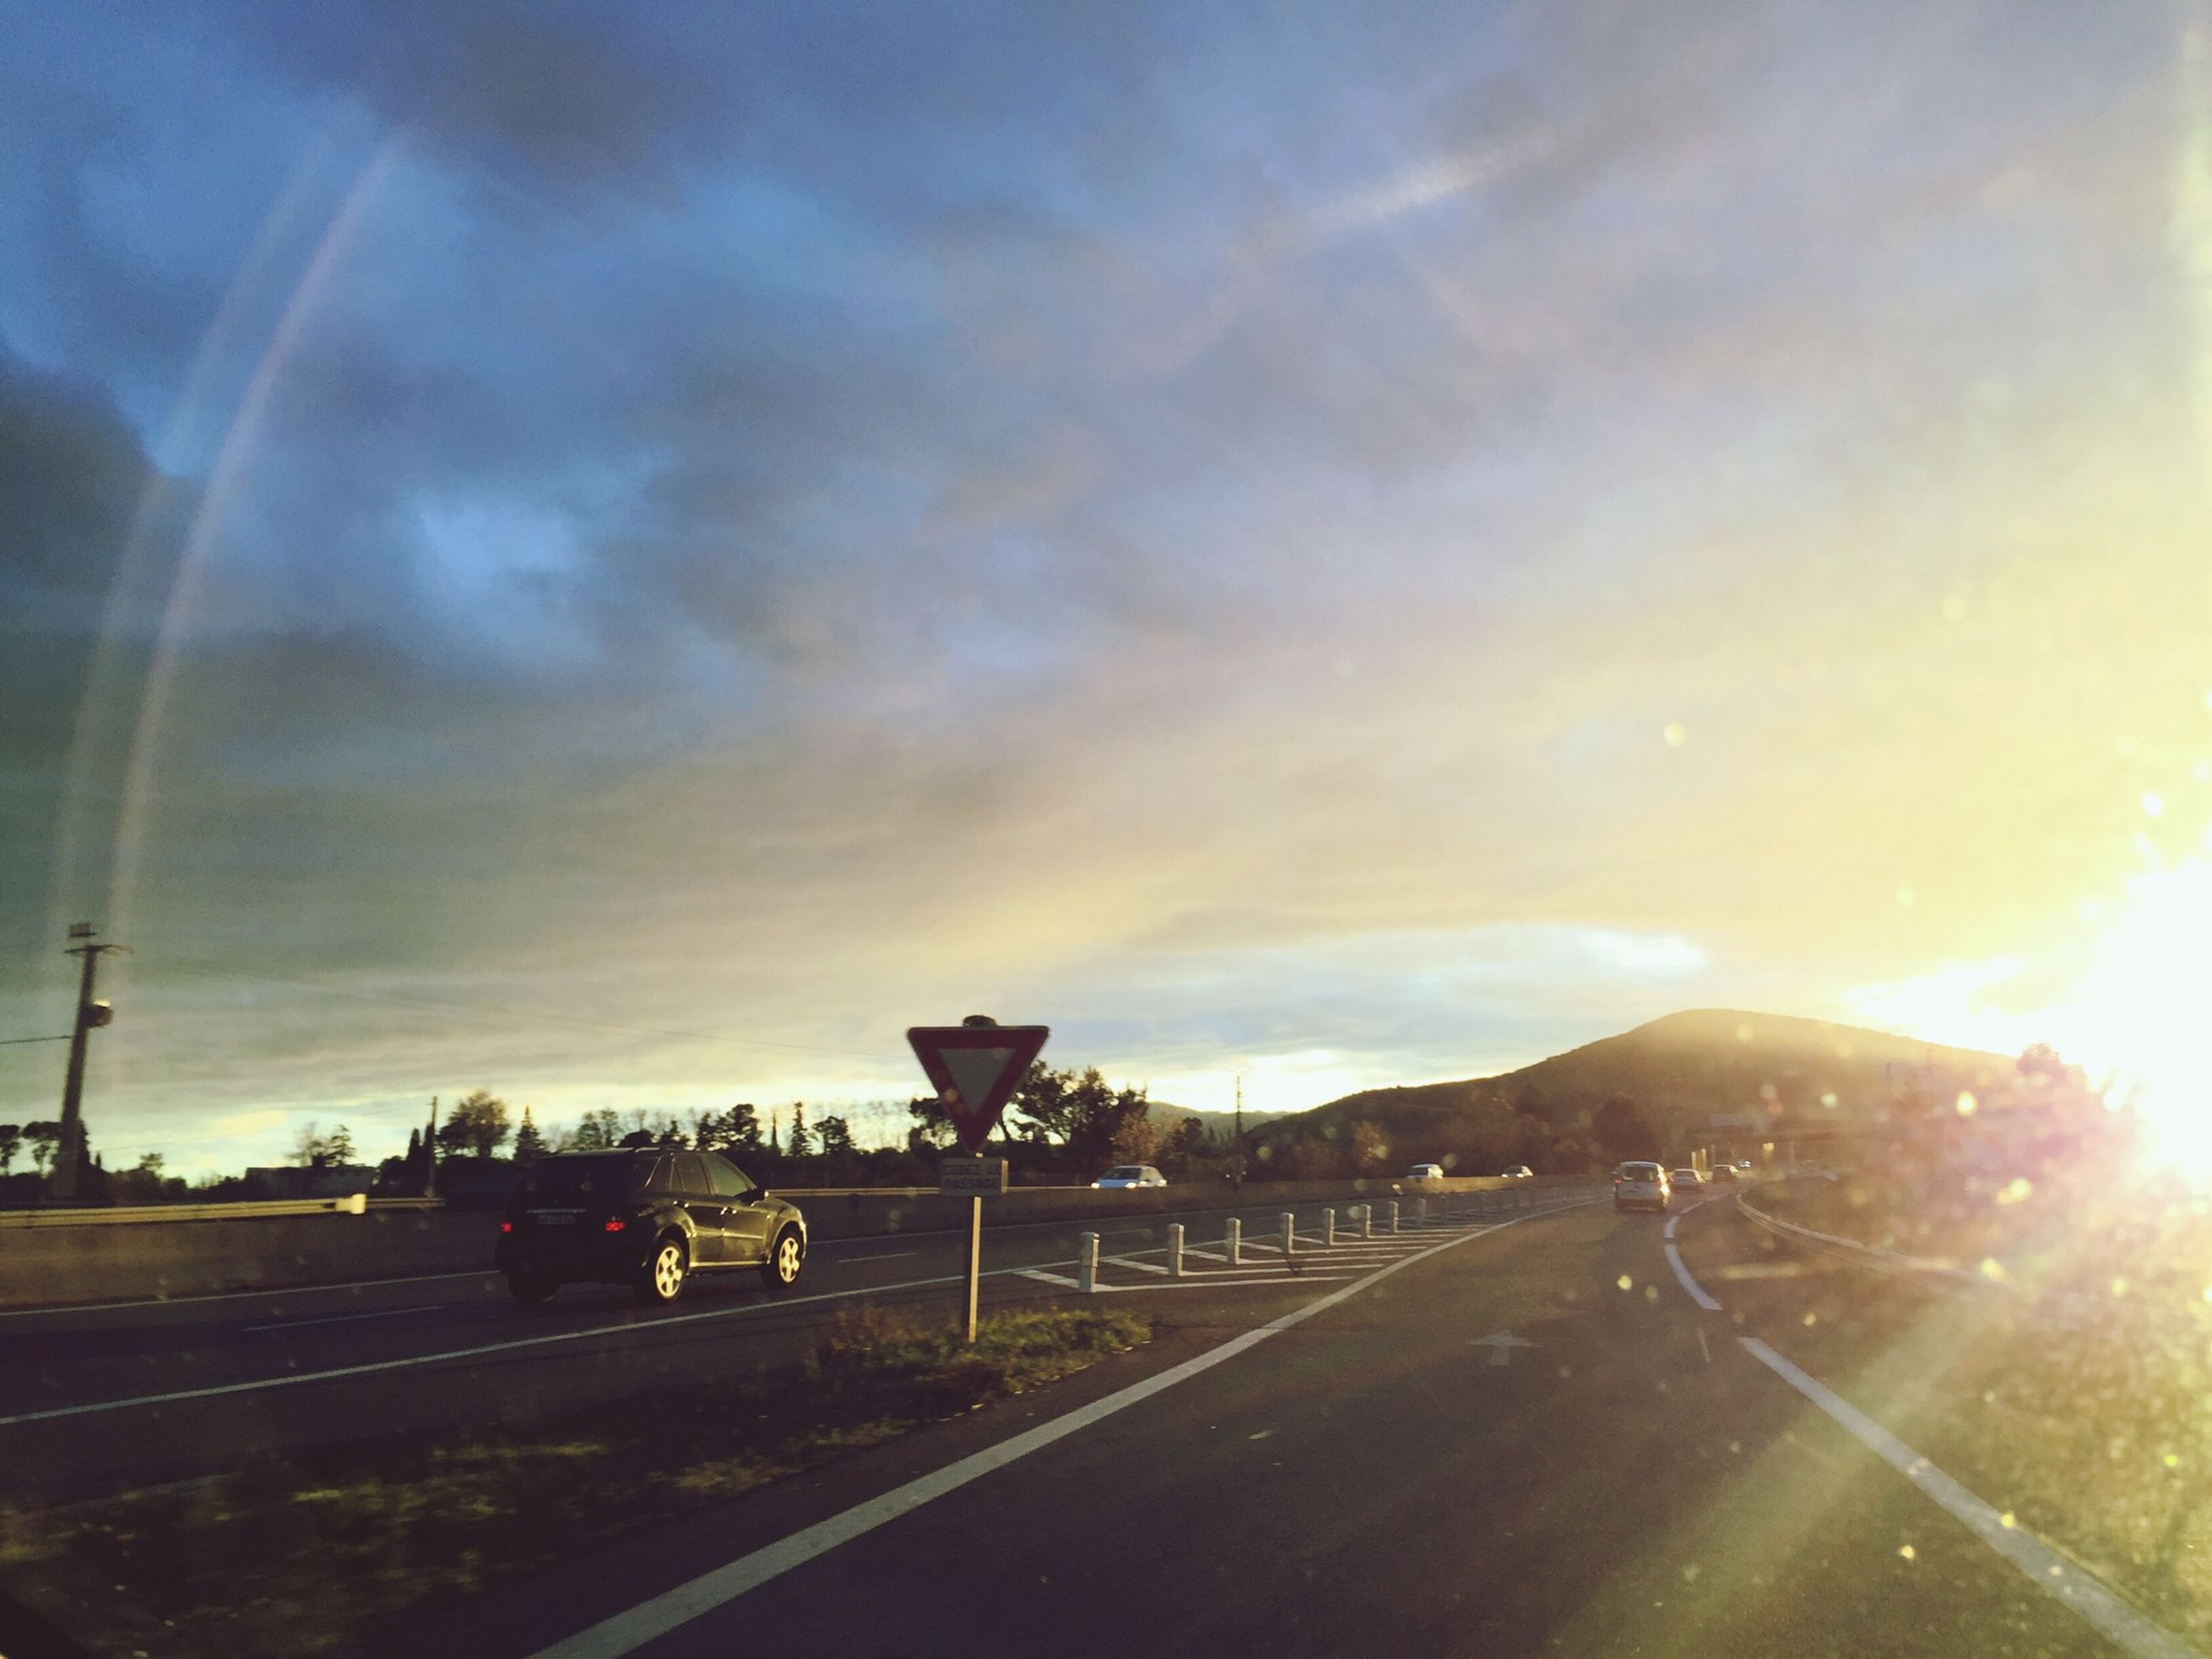 transportation, sky, car, road, land vehicle, cloud - sky, mode of transport, sunset, street, cloudy, cloud, the way forward, sunbeam, road marking, on the move, outdoors, nature, sun, sunlight, weather